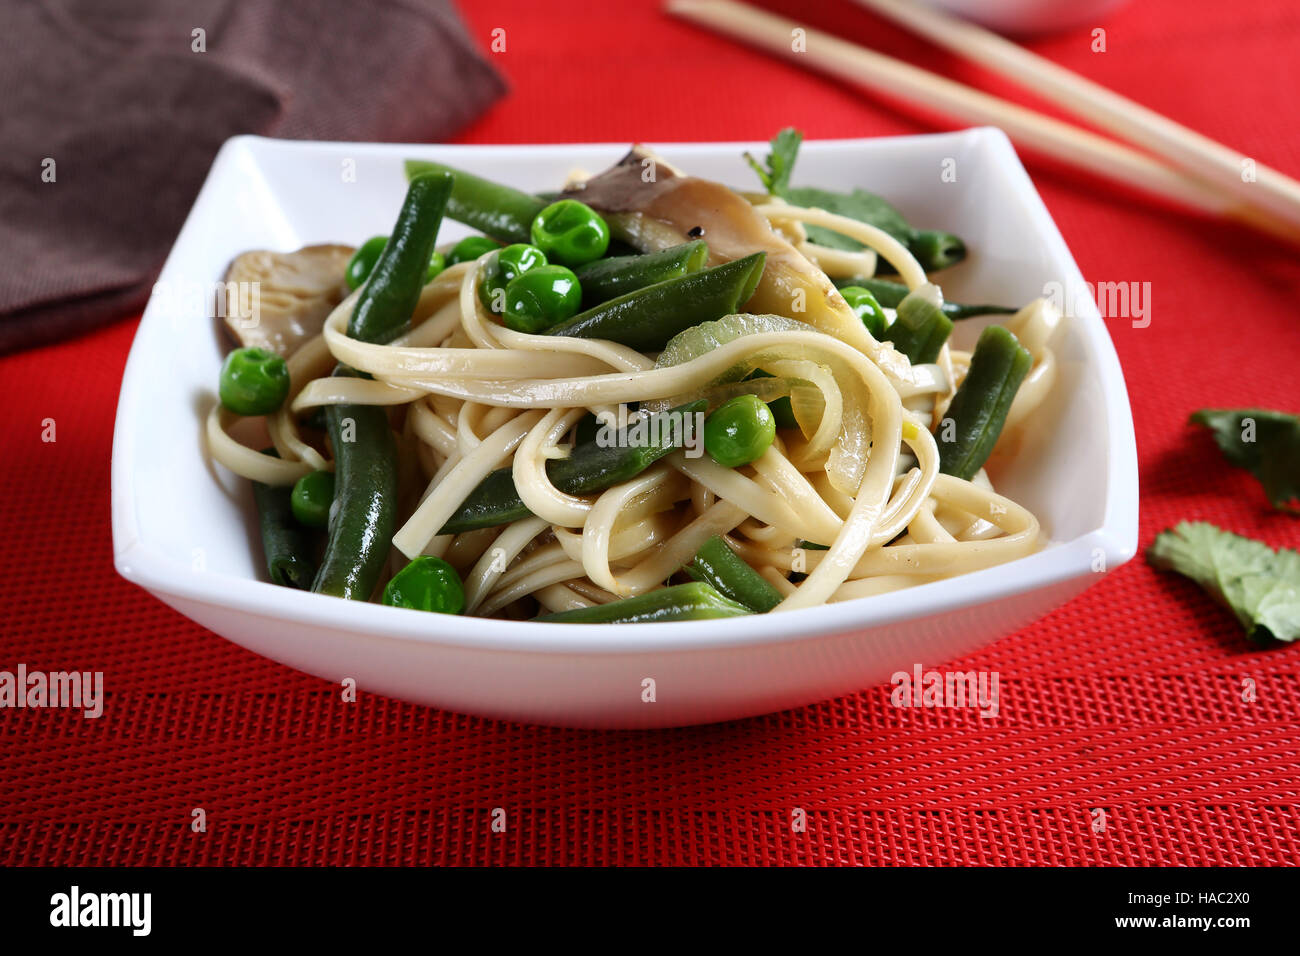 Tasty noodles with green beans, food - Stock Image